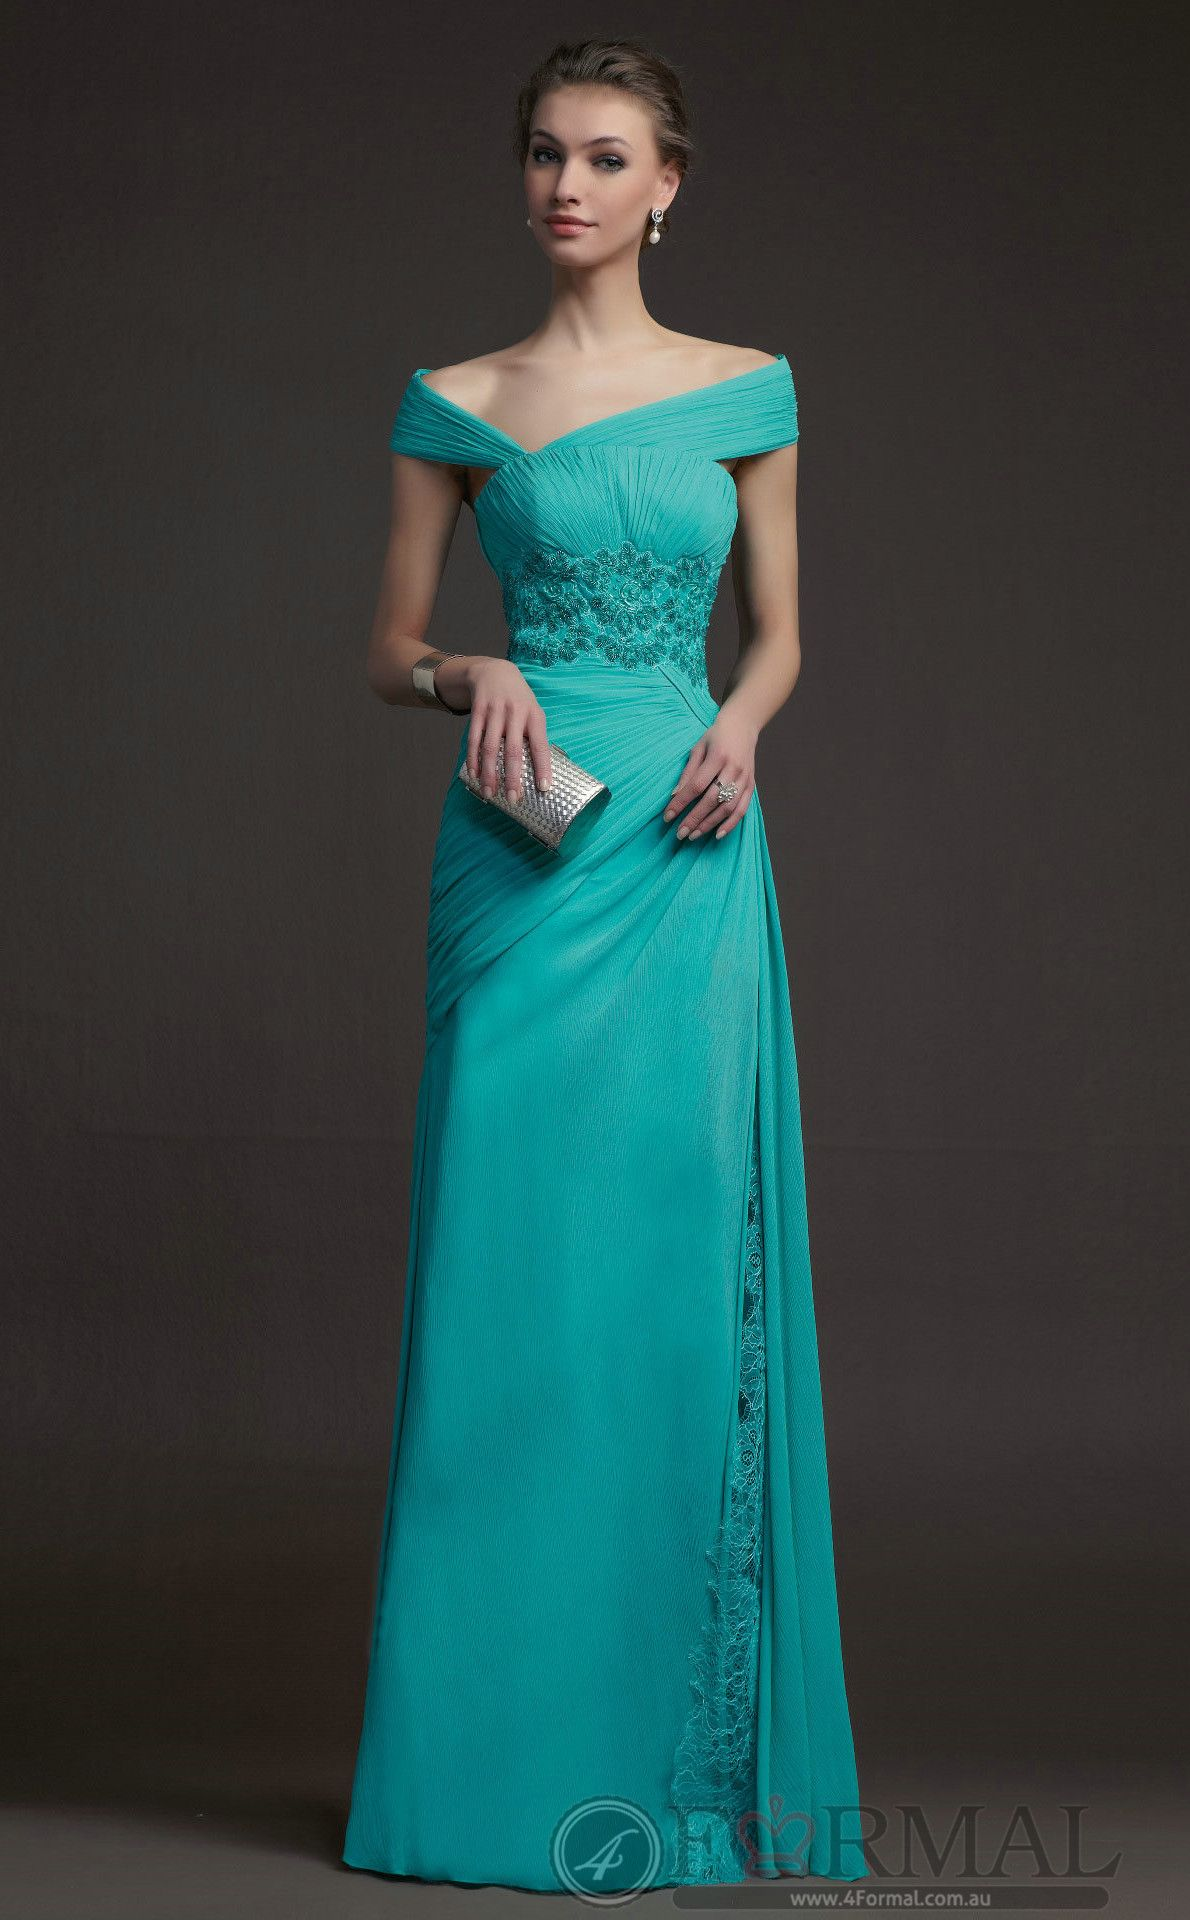 For Women Long Green Lace Semi Formal Prom Dress At 4formal